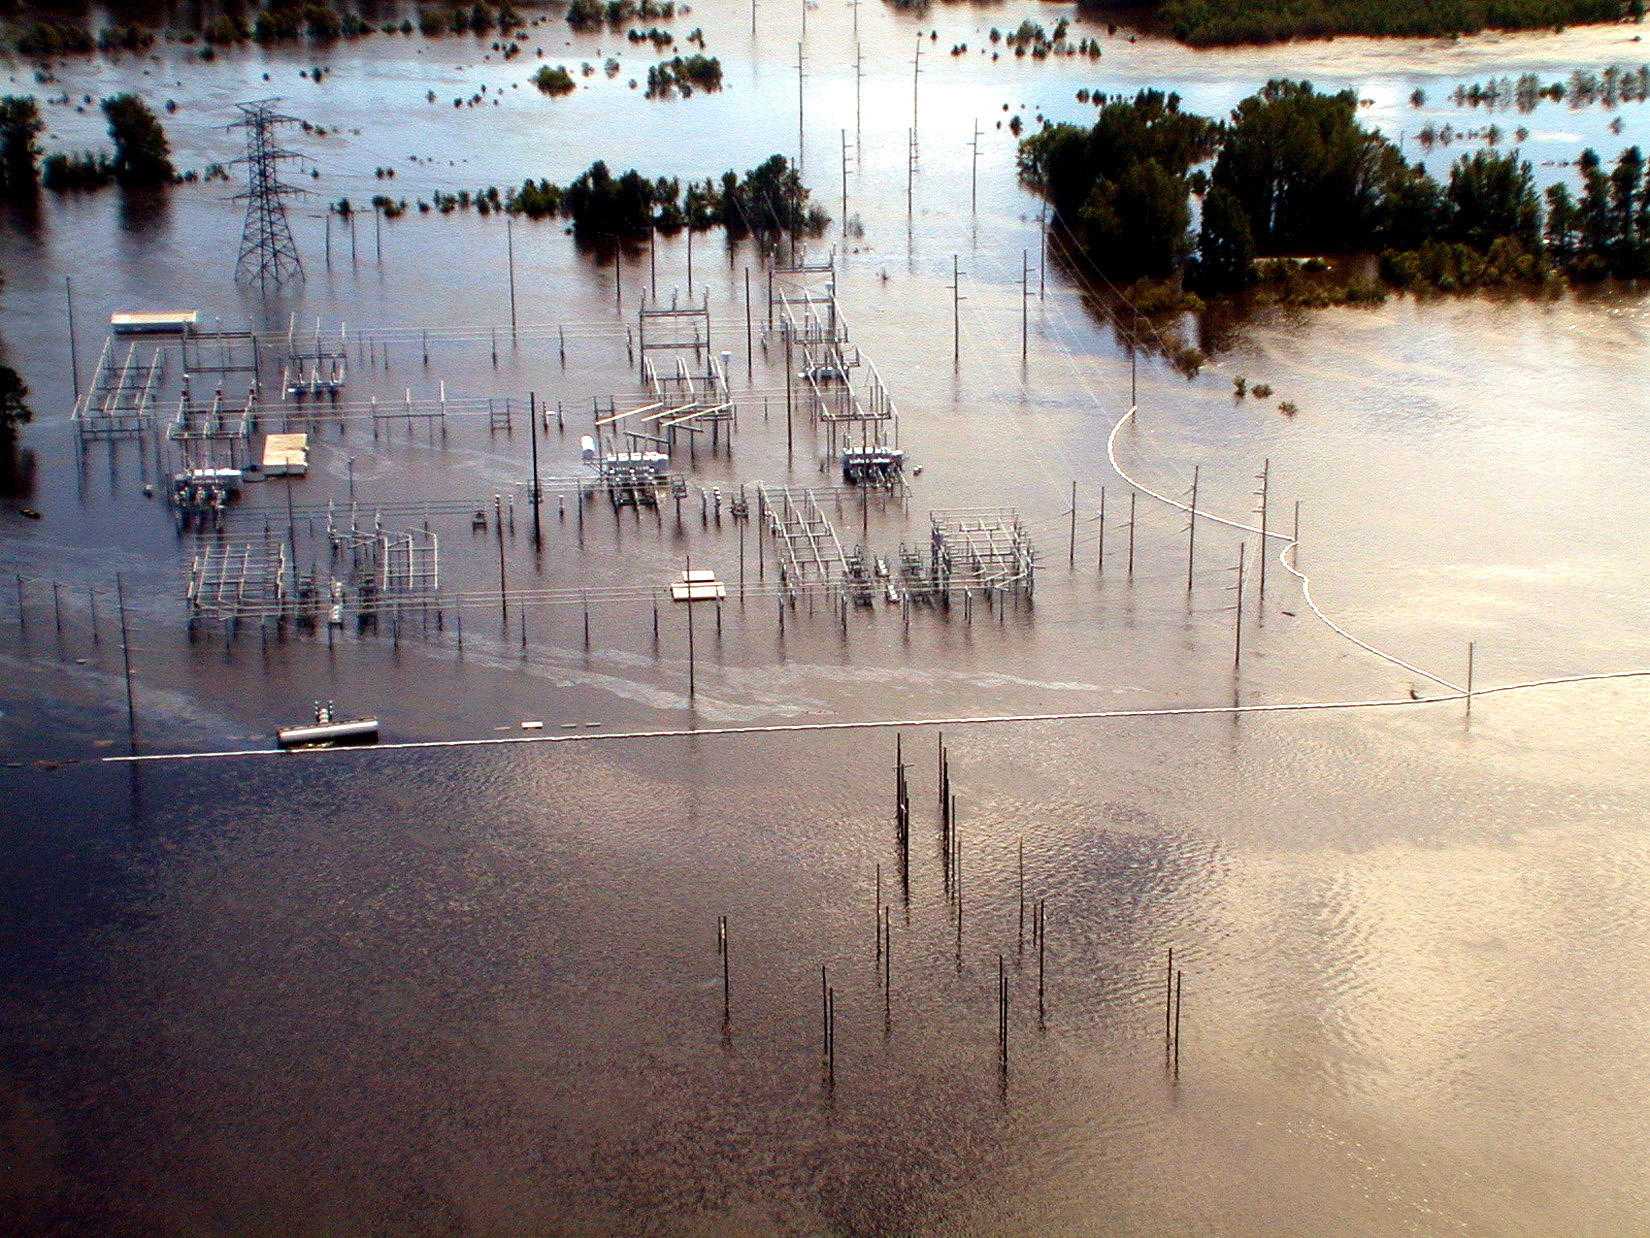 File:FEMA - 100 - Photograph by Dave Gatley taken on 09-22-1999 in